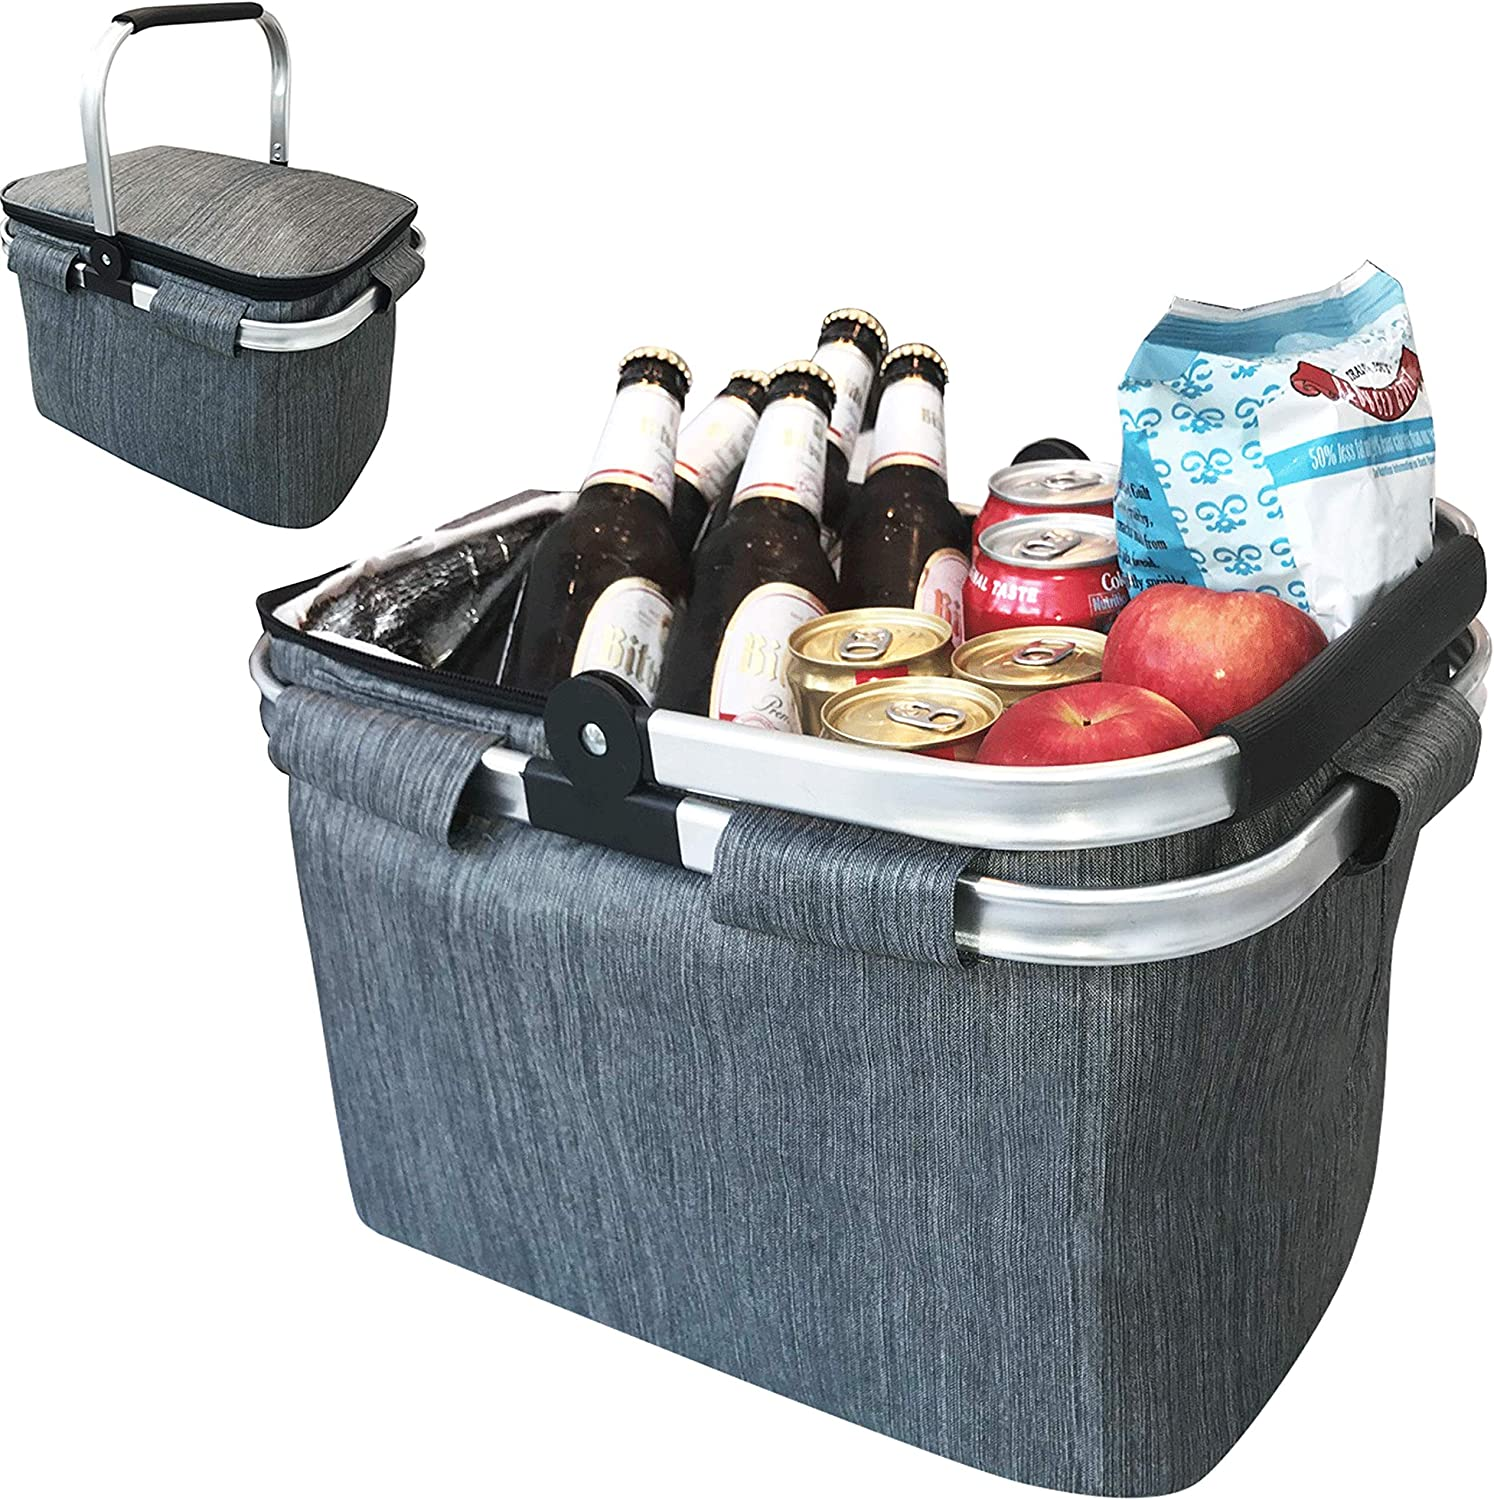 Large Insulated Picnic Basket Cooler 7.7 Gal Capacity Leakproof Folding Collapsible Portable Market Basket Bag Set Aluminum Handles for Travel, Shopping and Camping Keeps Wine, Food Drinks Fresh